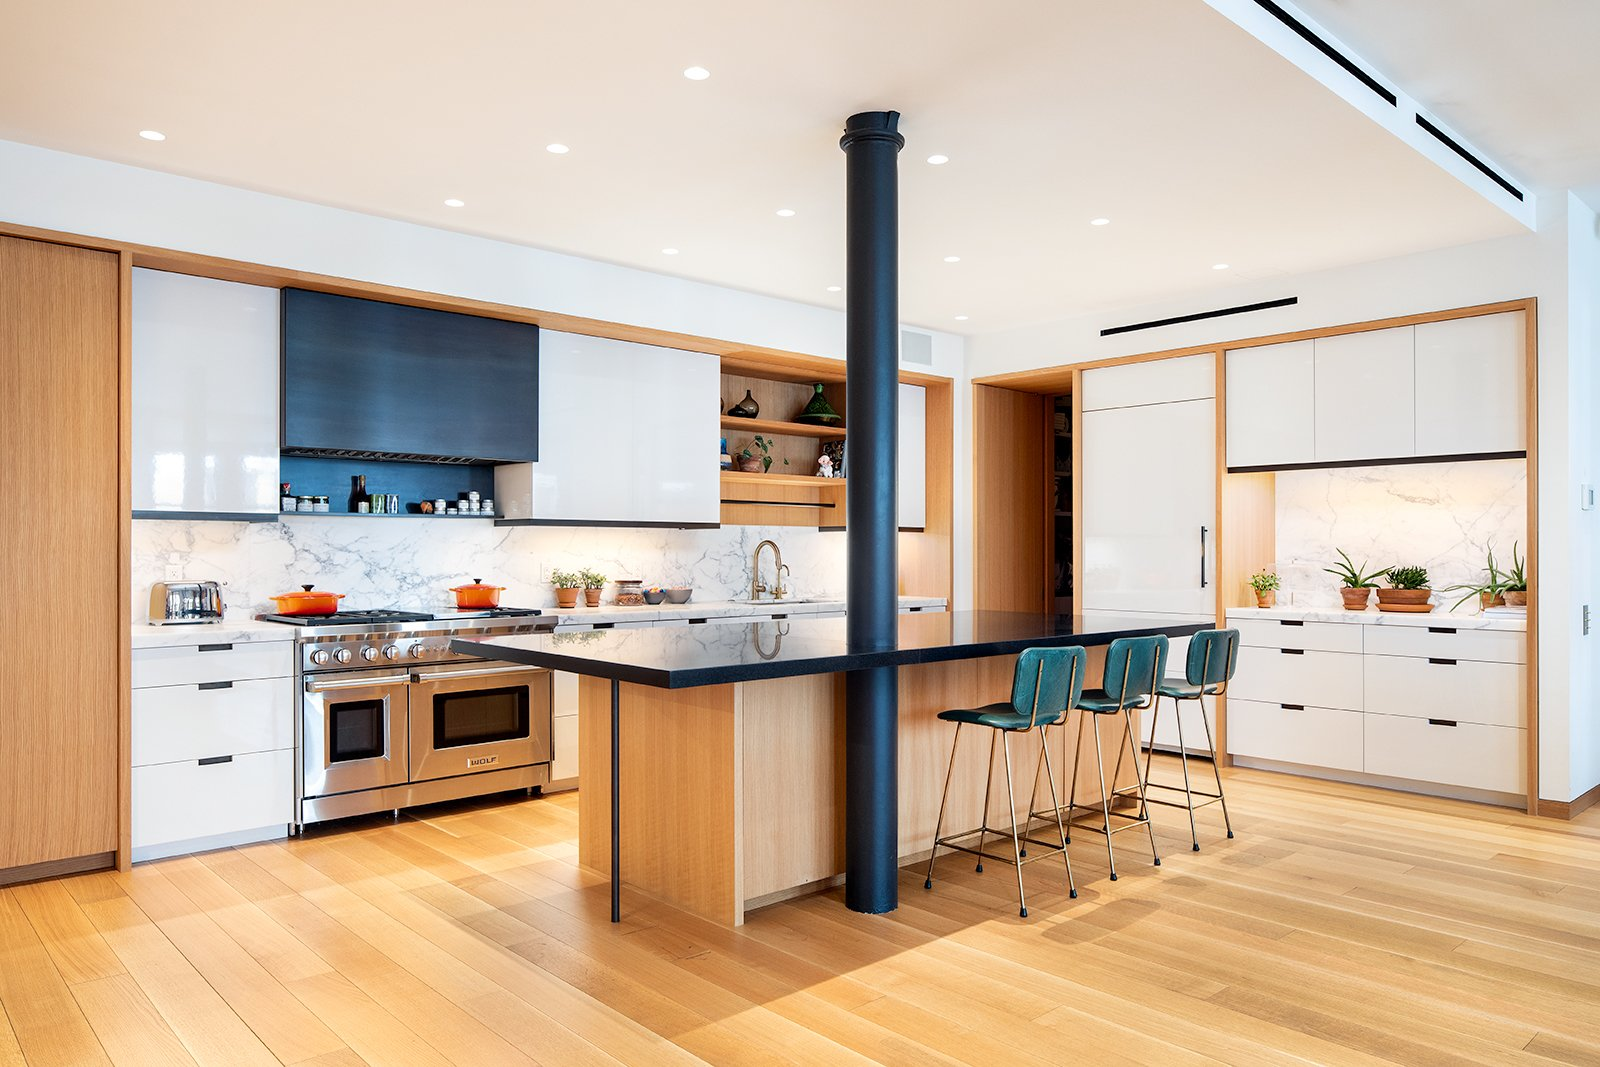 Kitchen, White, Refrigerator, Recessed, Range Hood, Marble, Marble, Granite, Range, Light Hardwood, and Undermount The original cast-iron supporting columns have been painted black to provide a striking contrast to the warm wood.    Best Kitchen Range Hood Light Hardwood Range Refrigerator White Undermount Photos from An Updated Historic Loft in Manhattan Is Listed For $4.5M